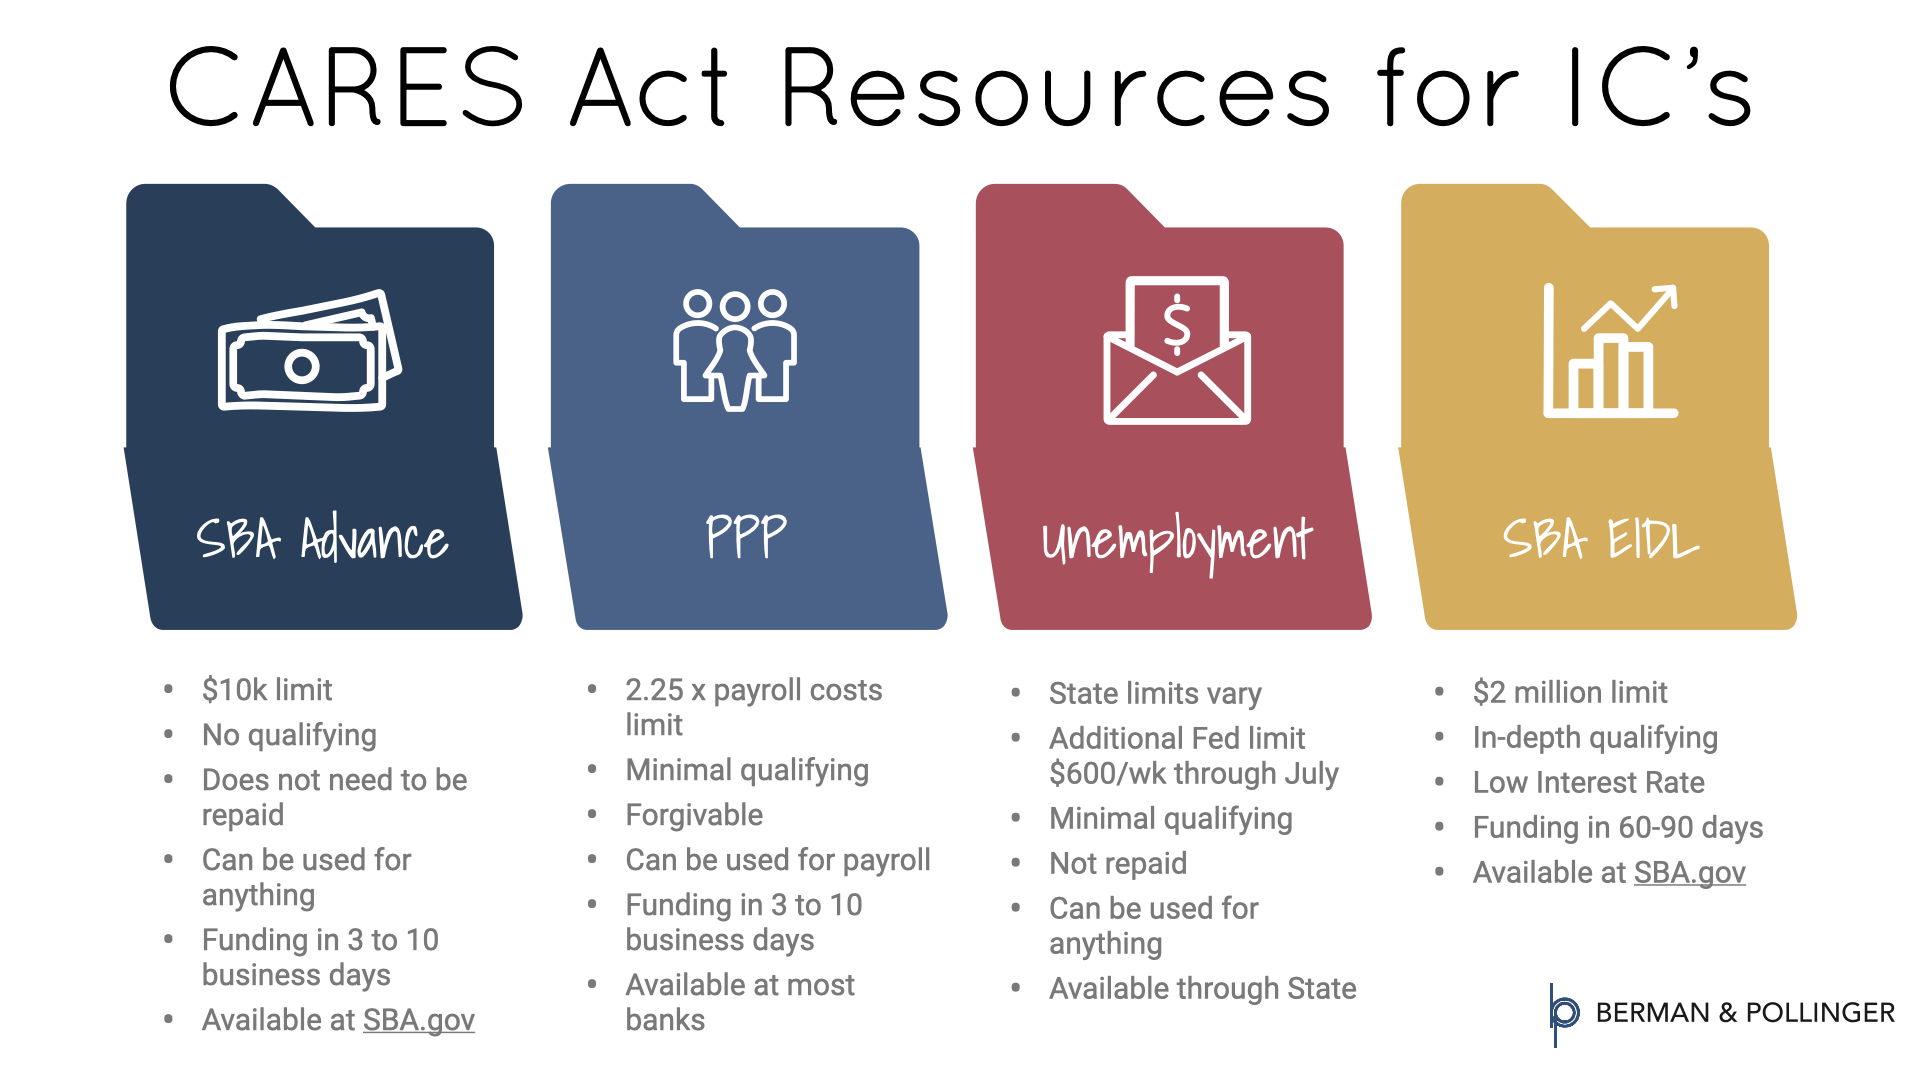 CARES Act Resources for IC's